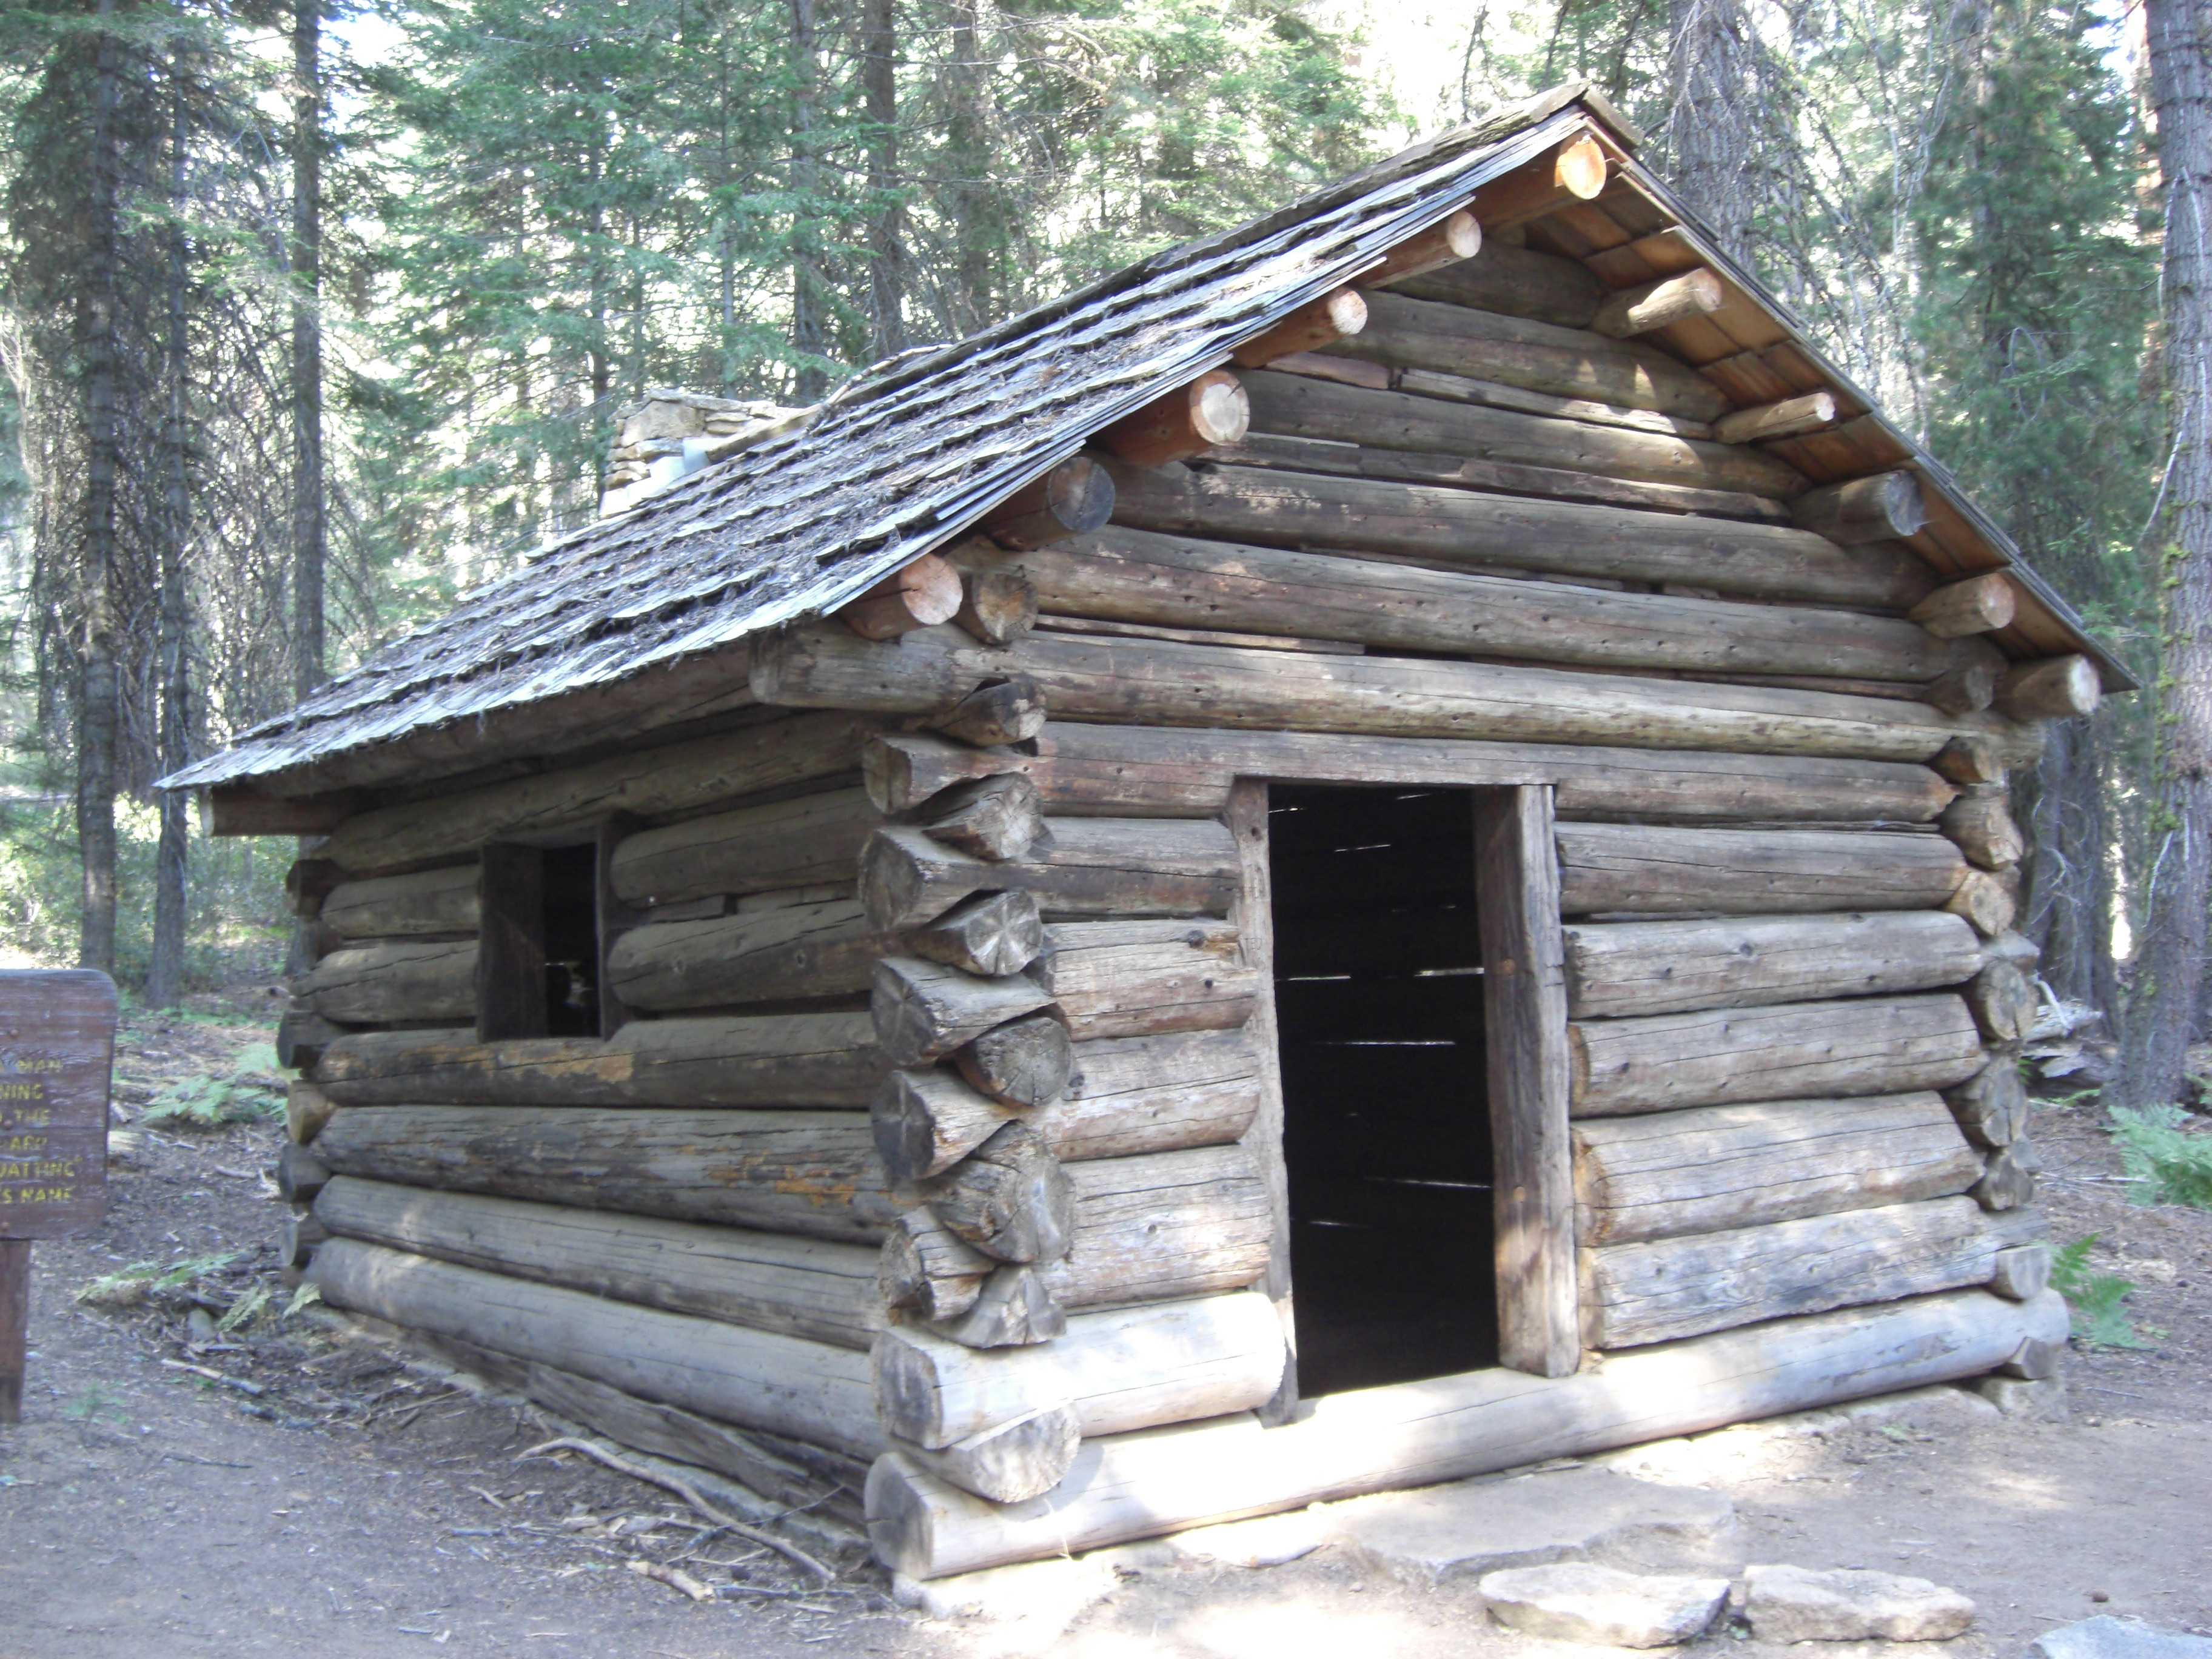 in cabin rock muirs and mr grant a bed only suite oldest grove s honeymoon sequoia cabins known with trees the is as single it spiders national at big forest since one muir